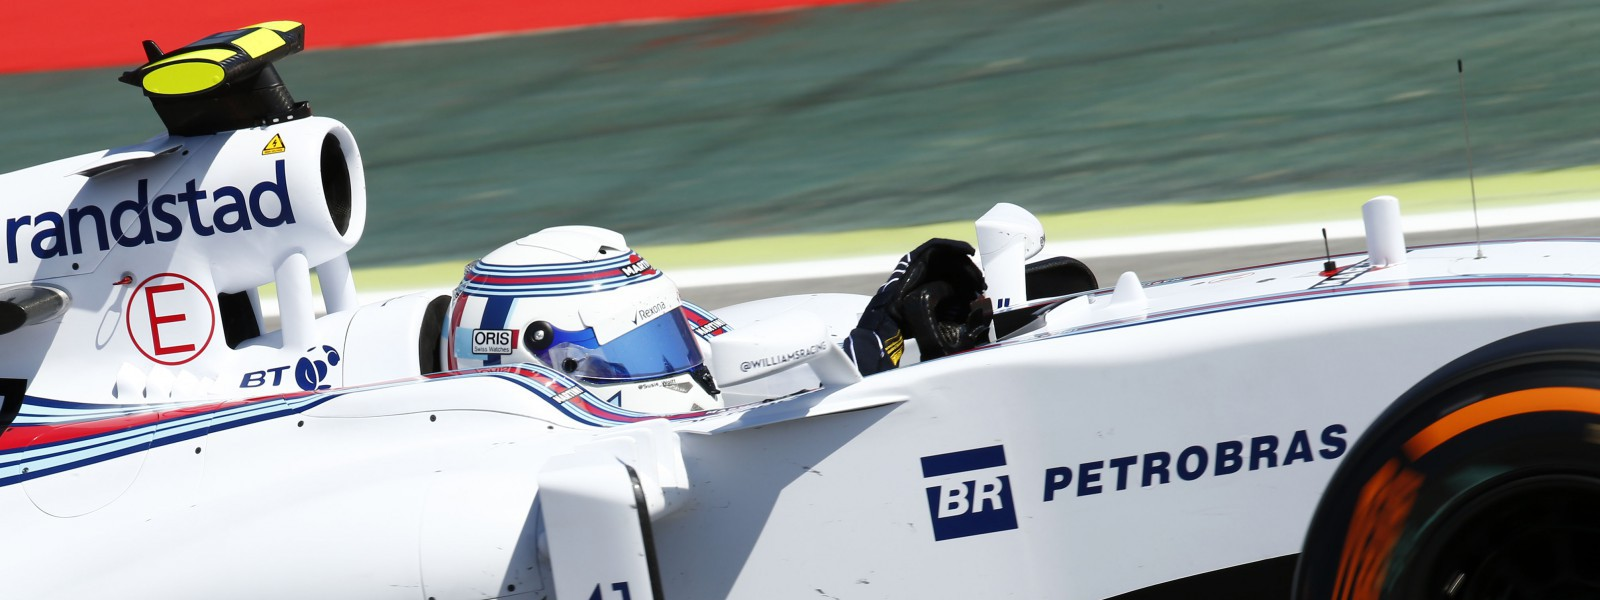 Motorsports: FIA Formula One World Championship 2015, Grand Prix of Spain,  #41 Susie Wolff (GBR, Williams Martini Racing) *** Local Caption *** +++ www.hoch-zwei.net +++ copyright: HOCH ZWEI +++